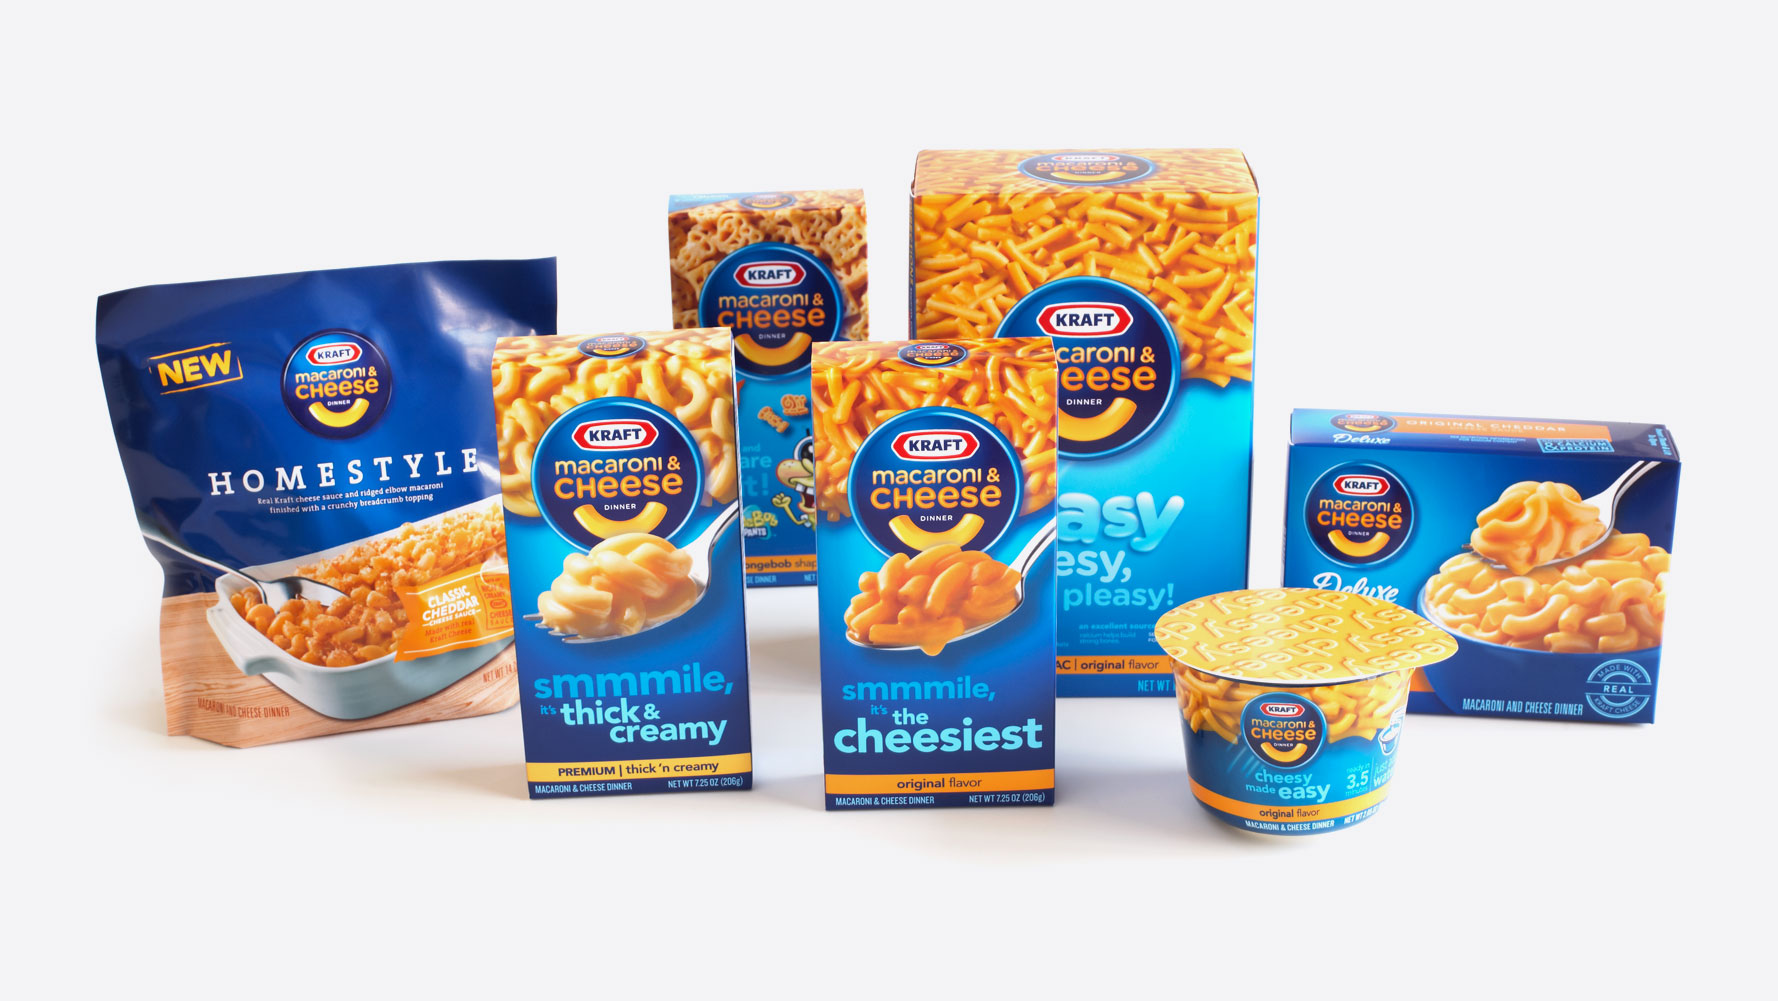 We restructured Kraft Macaroni & Cheese's brand architecture to unify its portfolio and optimize marketing spend.